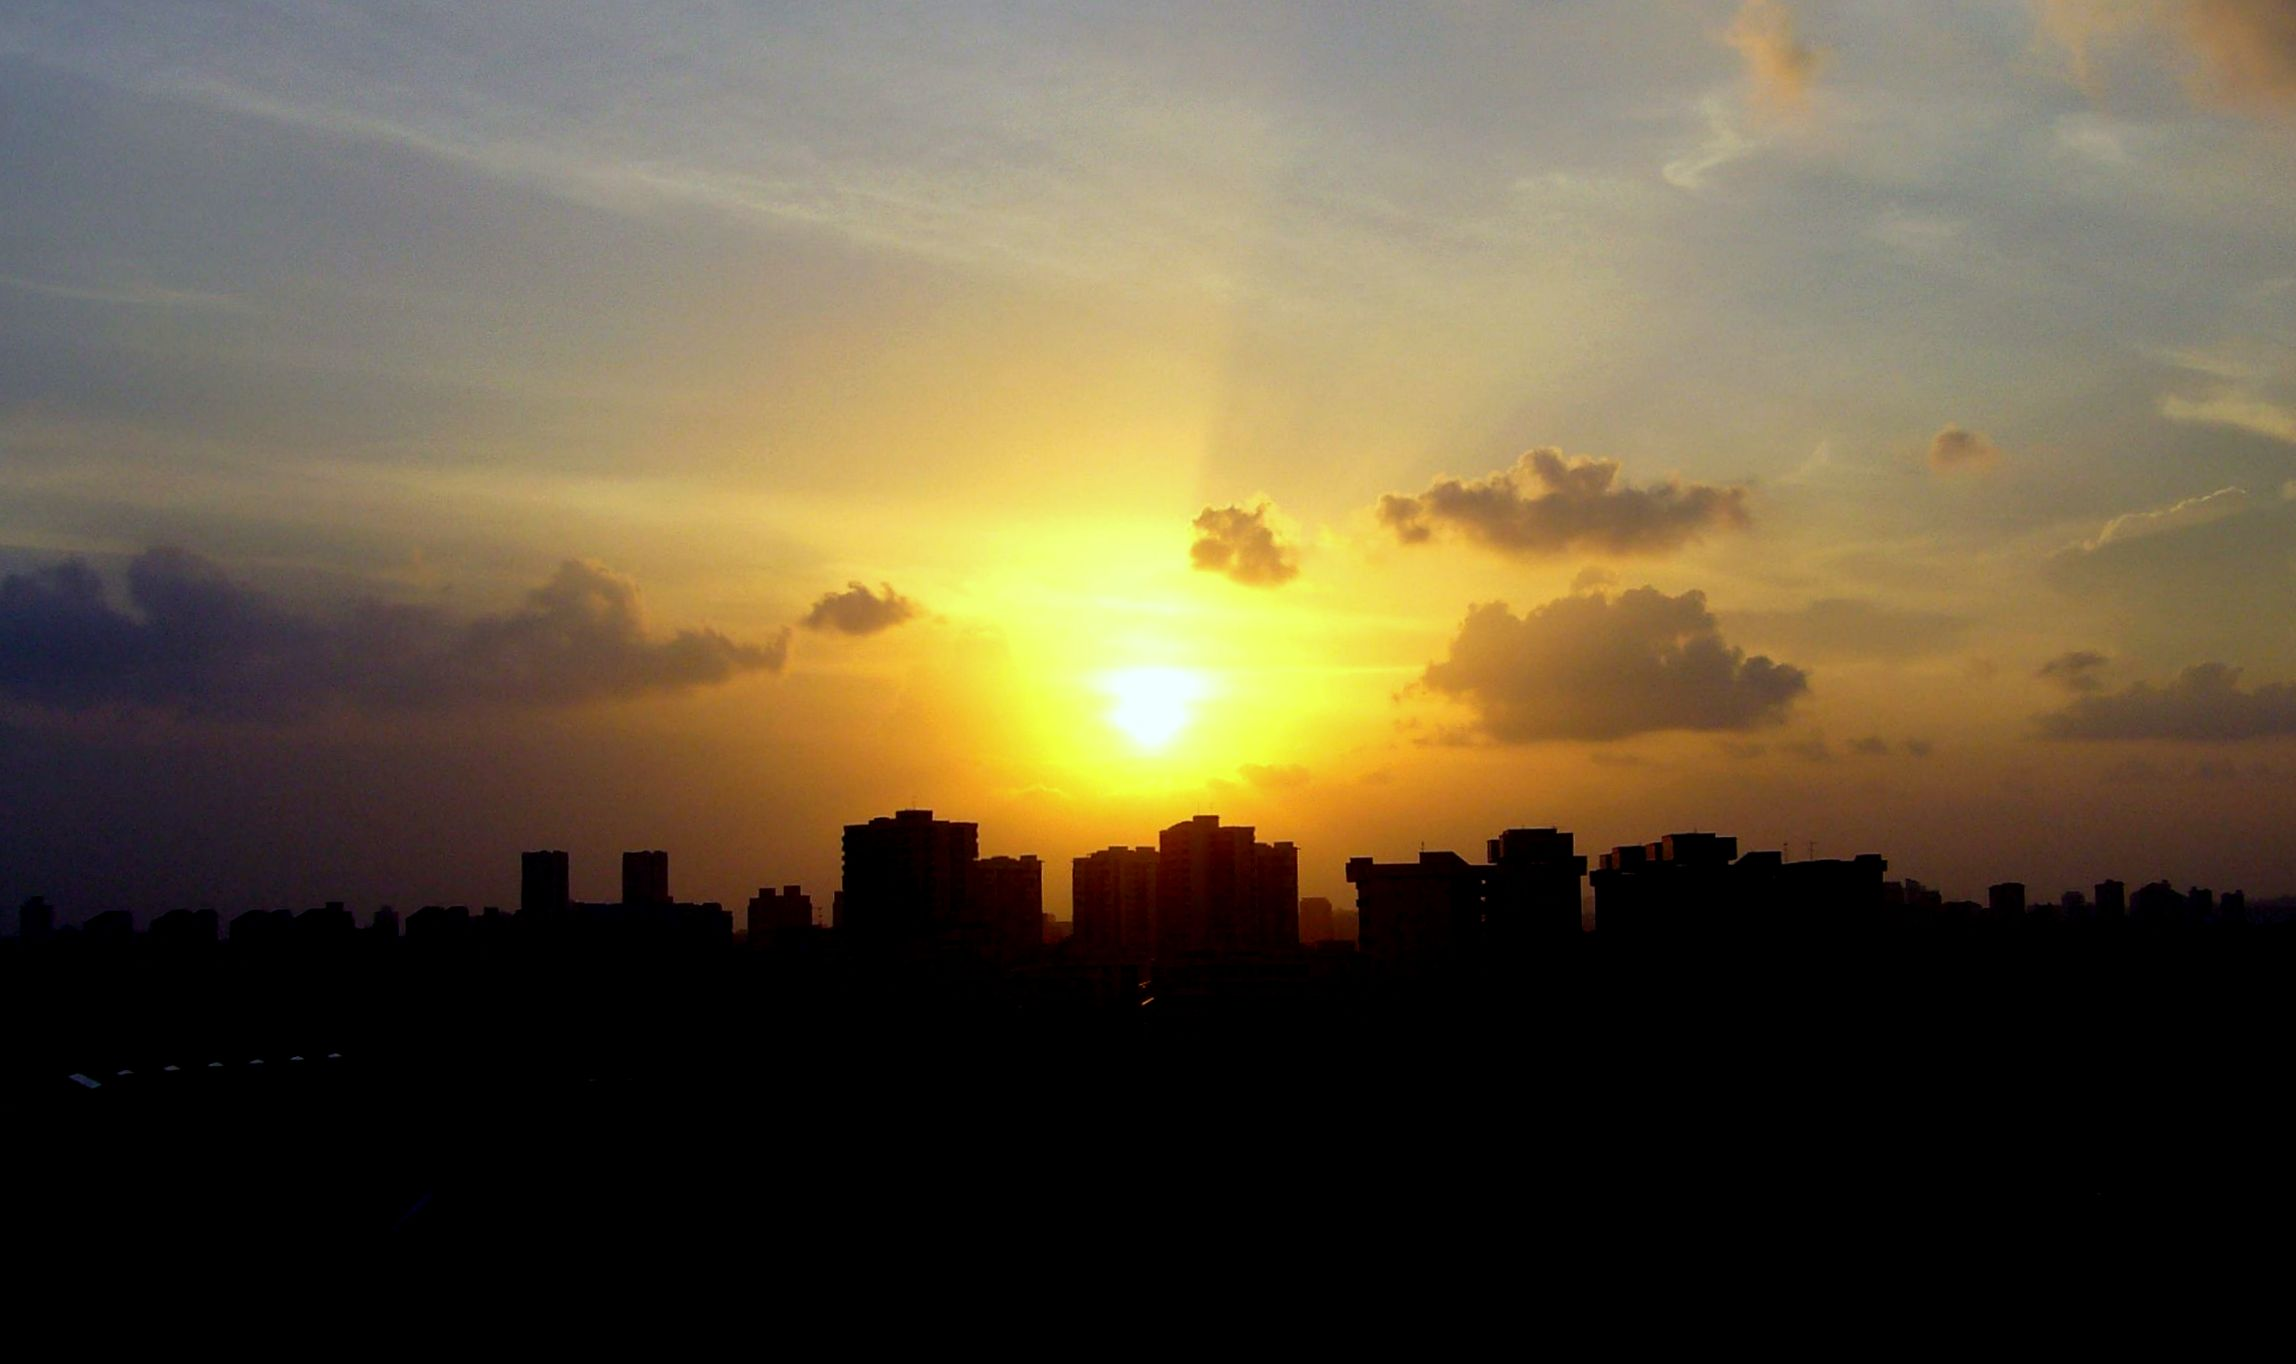 Sunset, Serangoon, Singapore (206378225)